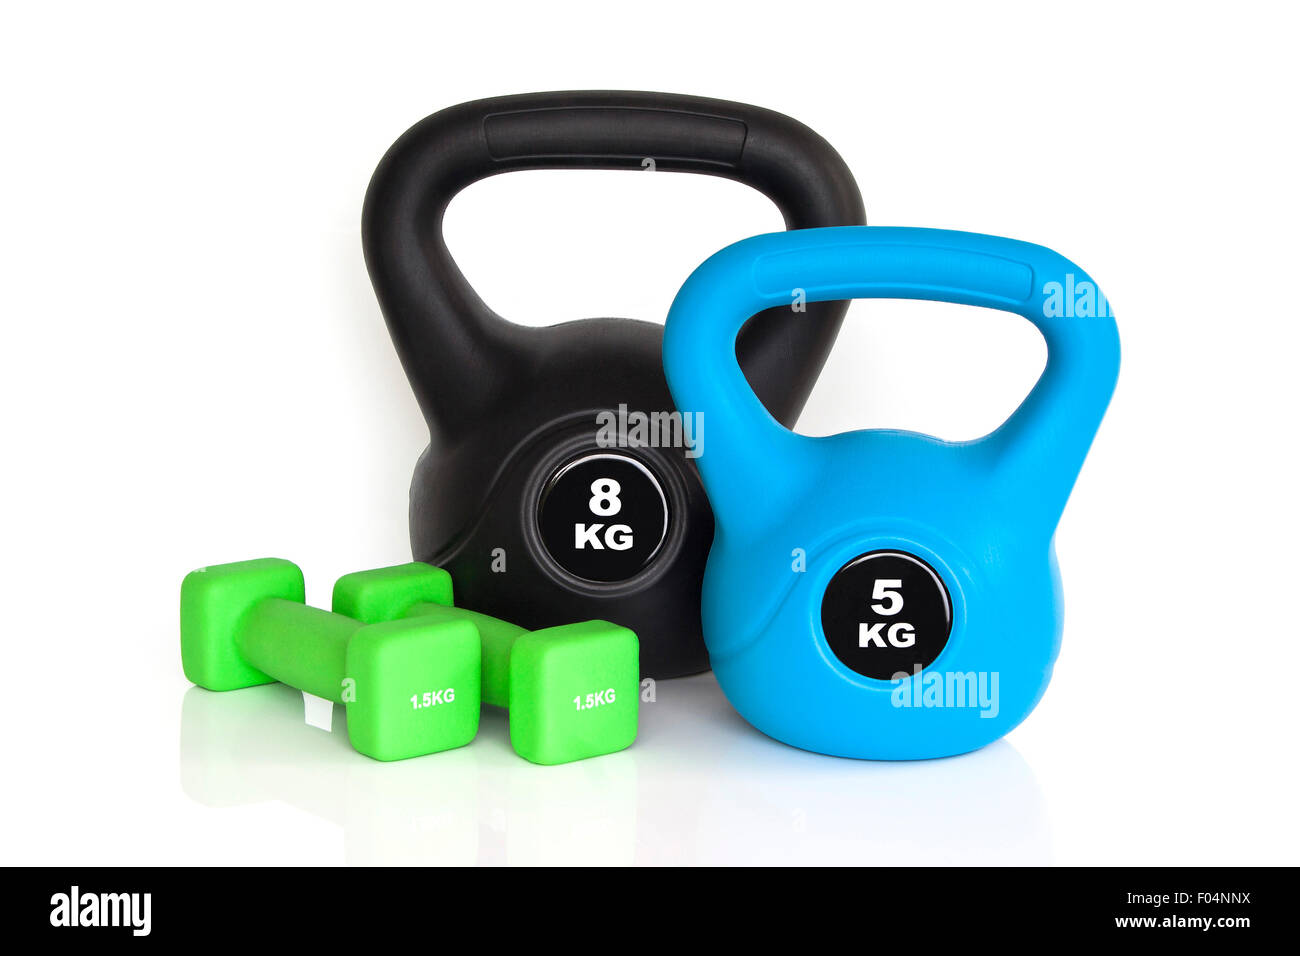 Dumbbells and kettlebells isolated on white background. Weights for a fitness training. - Stock Image